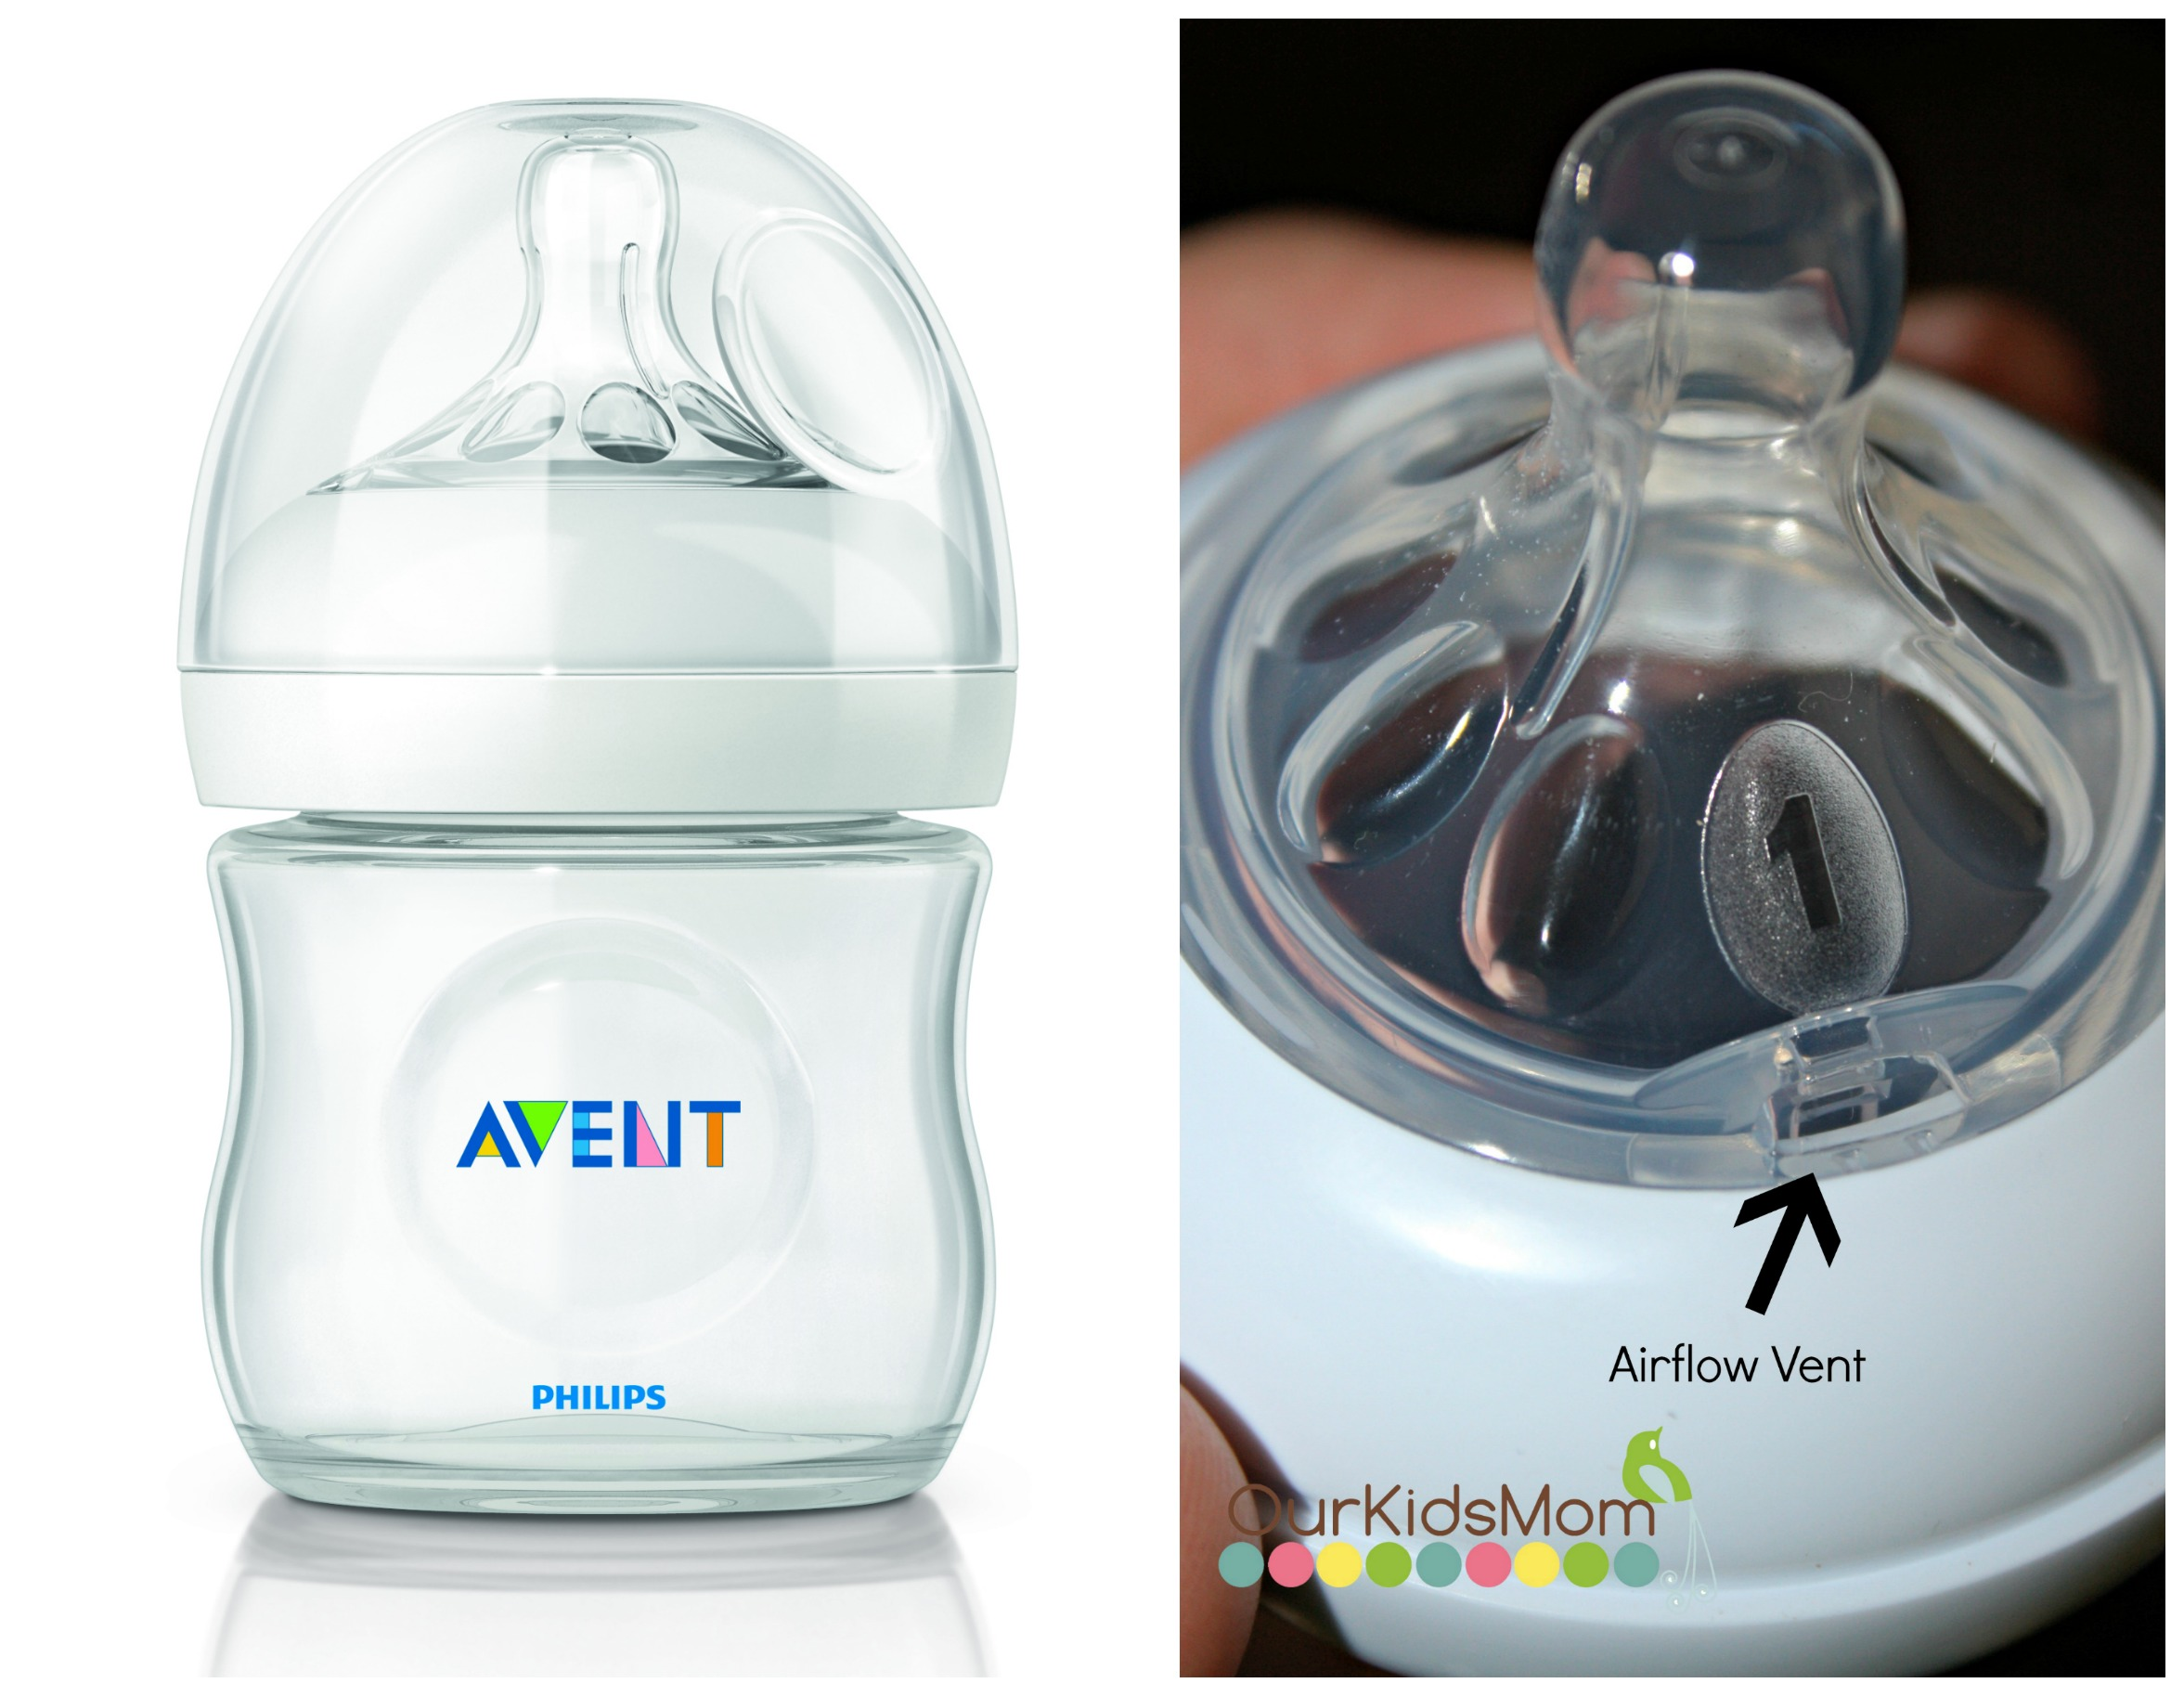 Teal Philips Avent Electric Comfort Breast Pump Review Sent Philips Avent Bottle On Nipple I Was Bottle Re Are Comfort Increasing Softness baby Avent Natural Bottles